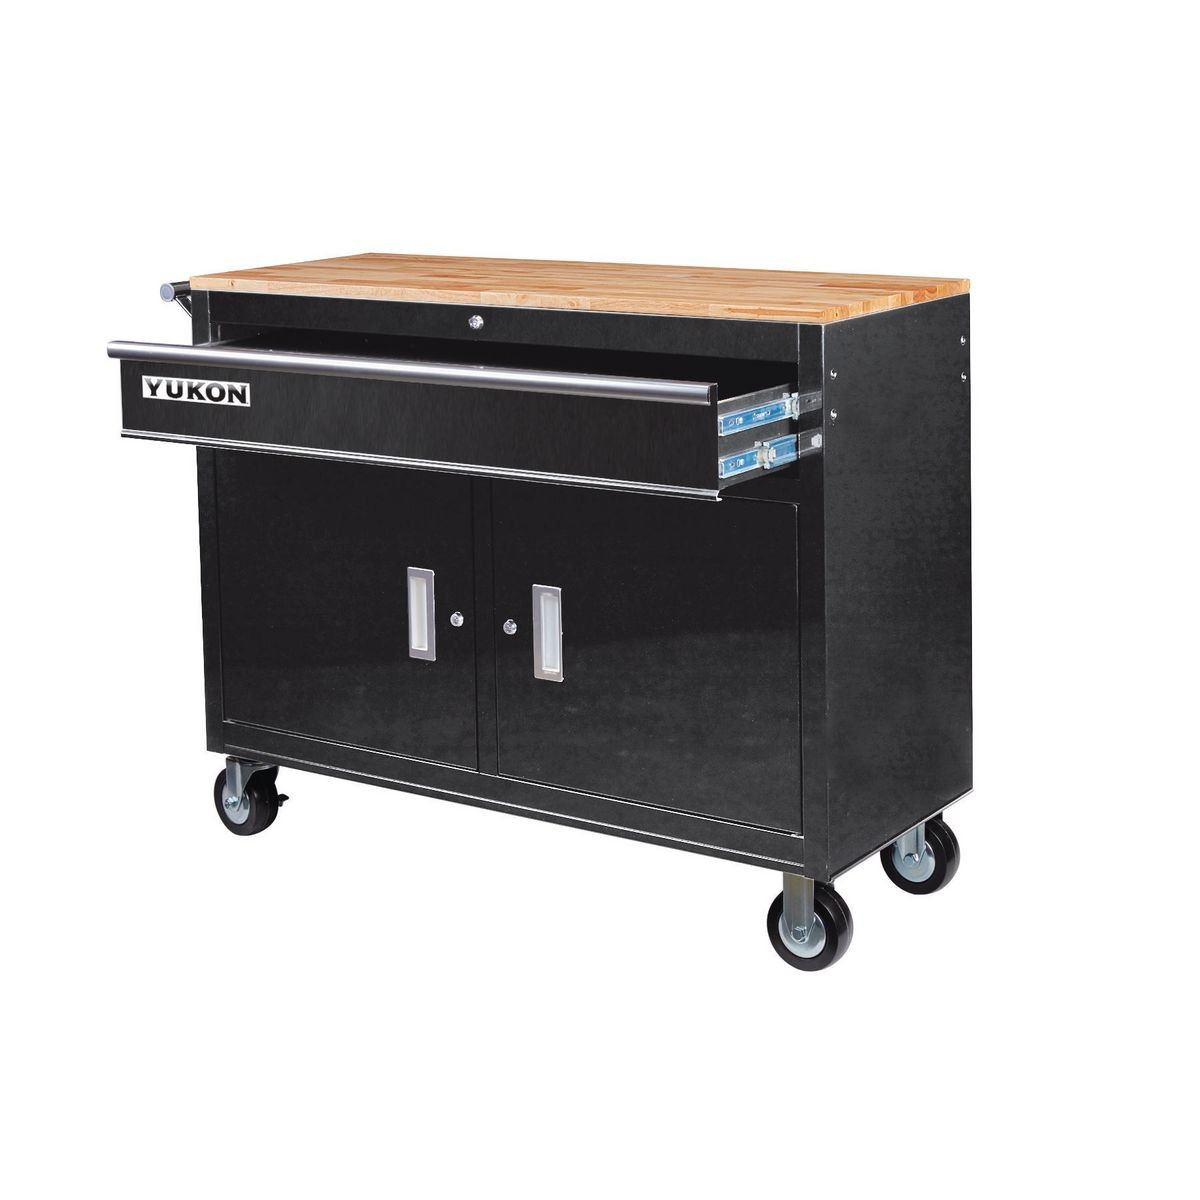 Yukon 64023 46 Inch Mobile Storage Cabinet With Wooden Top